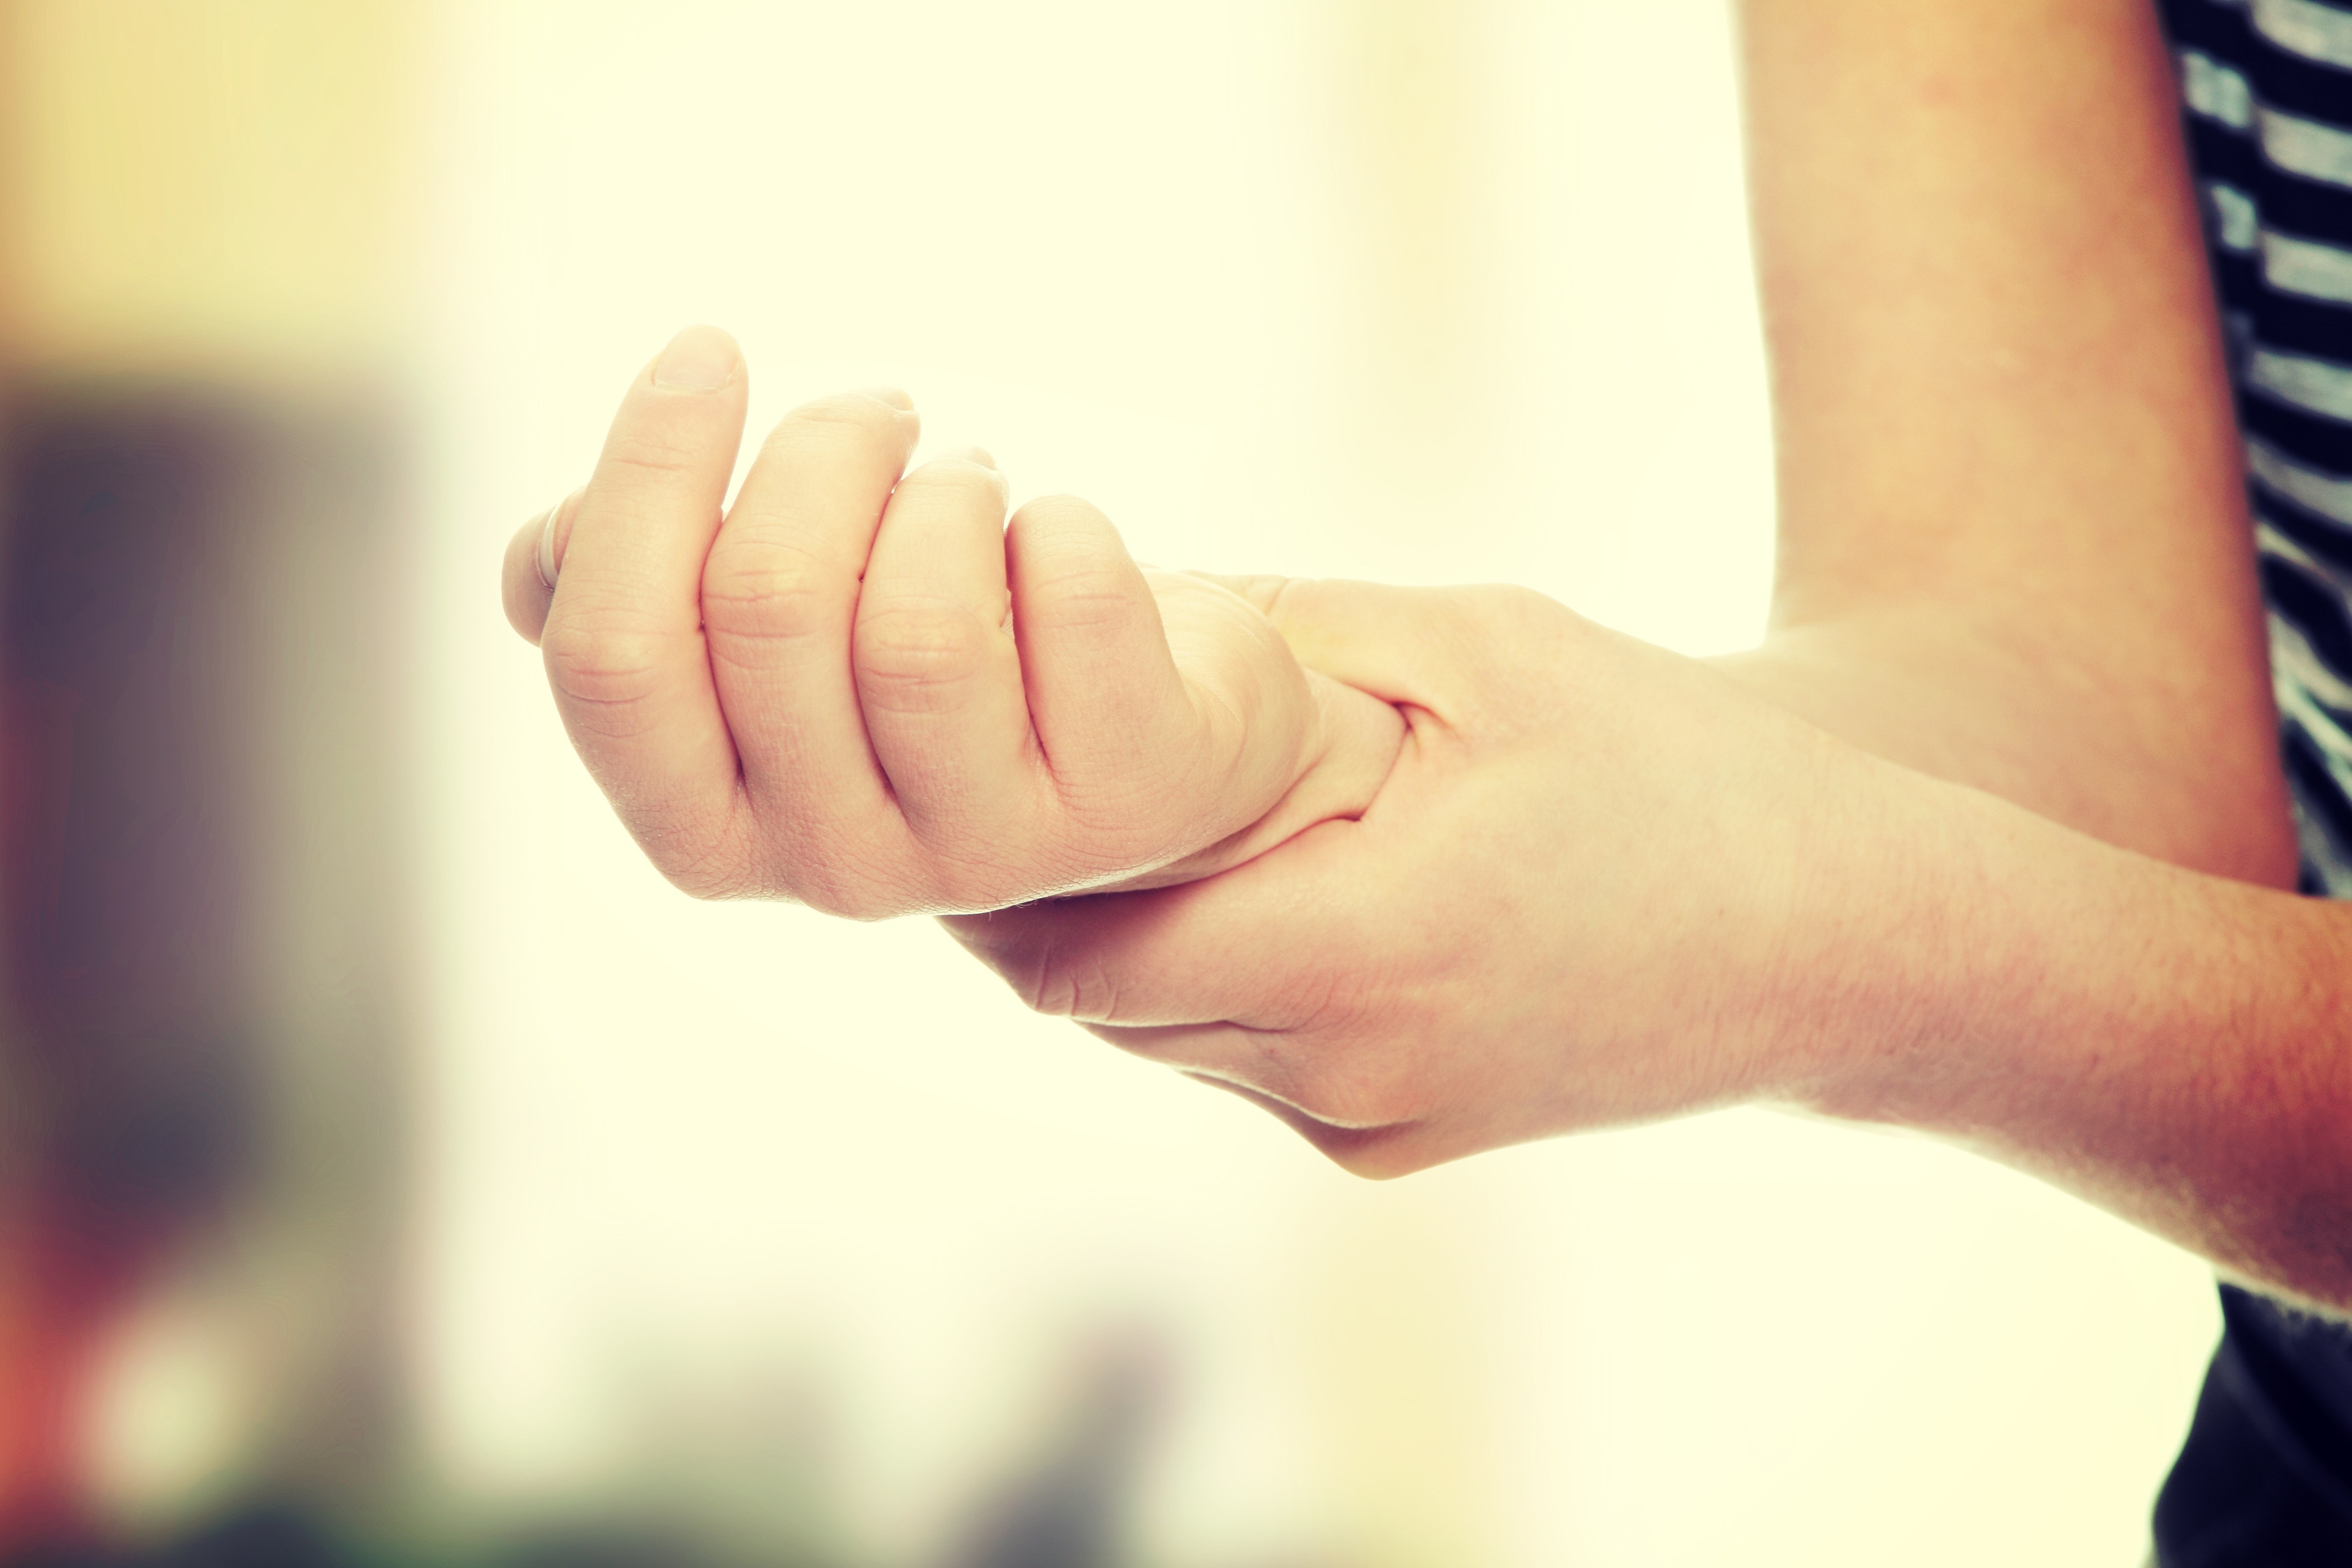 An image depicting a person suffering from wrist sprain symptoms